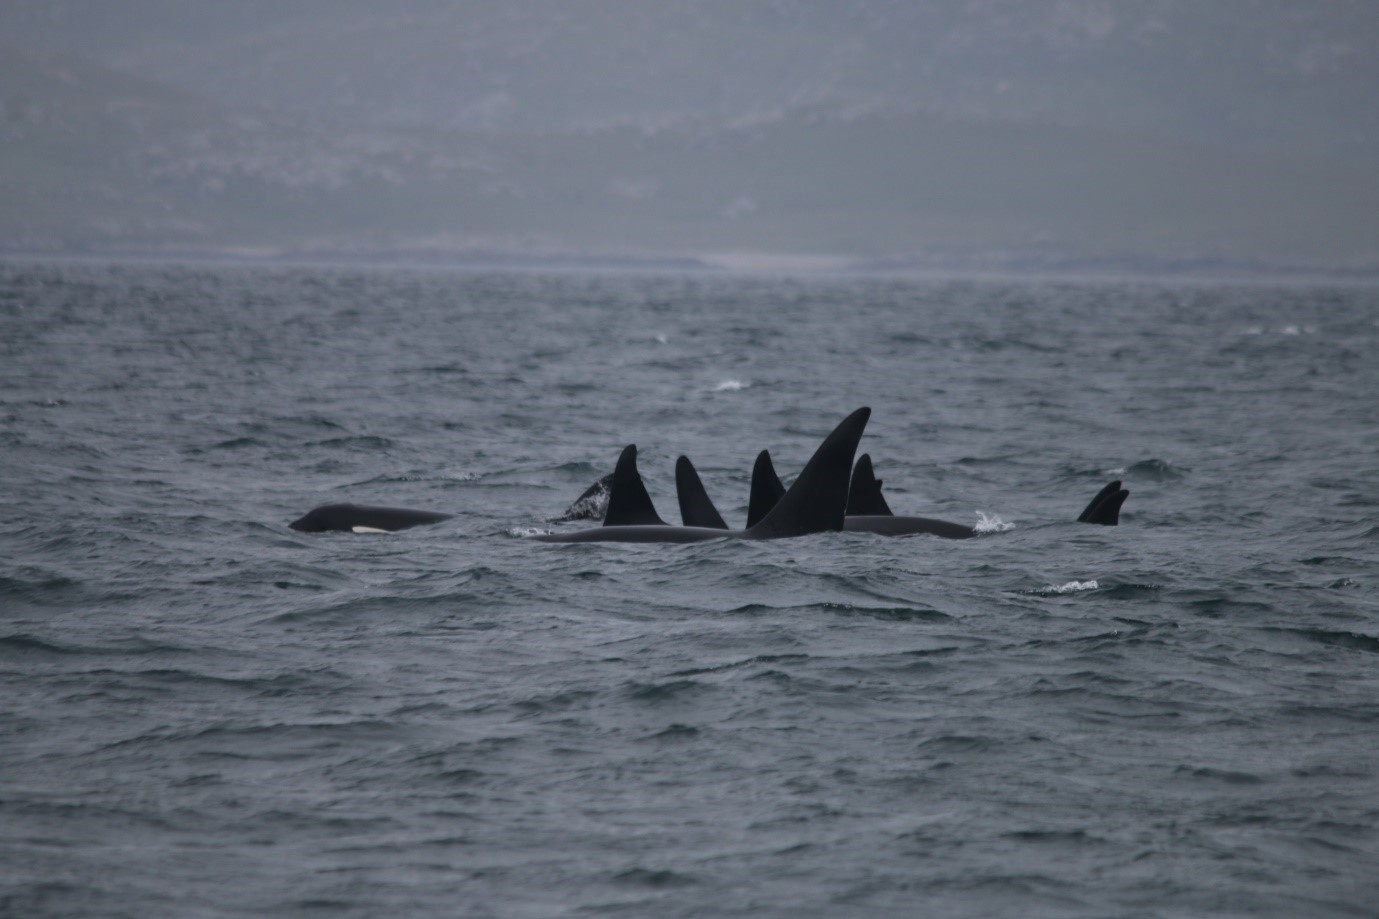 All nine killer whales surfacing in unison - what a sight!